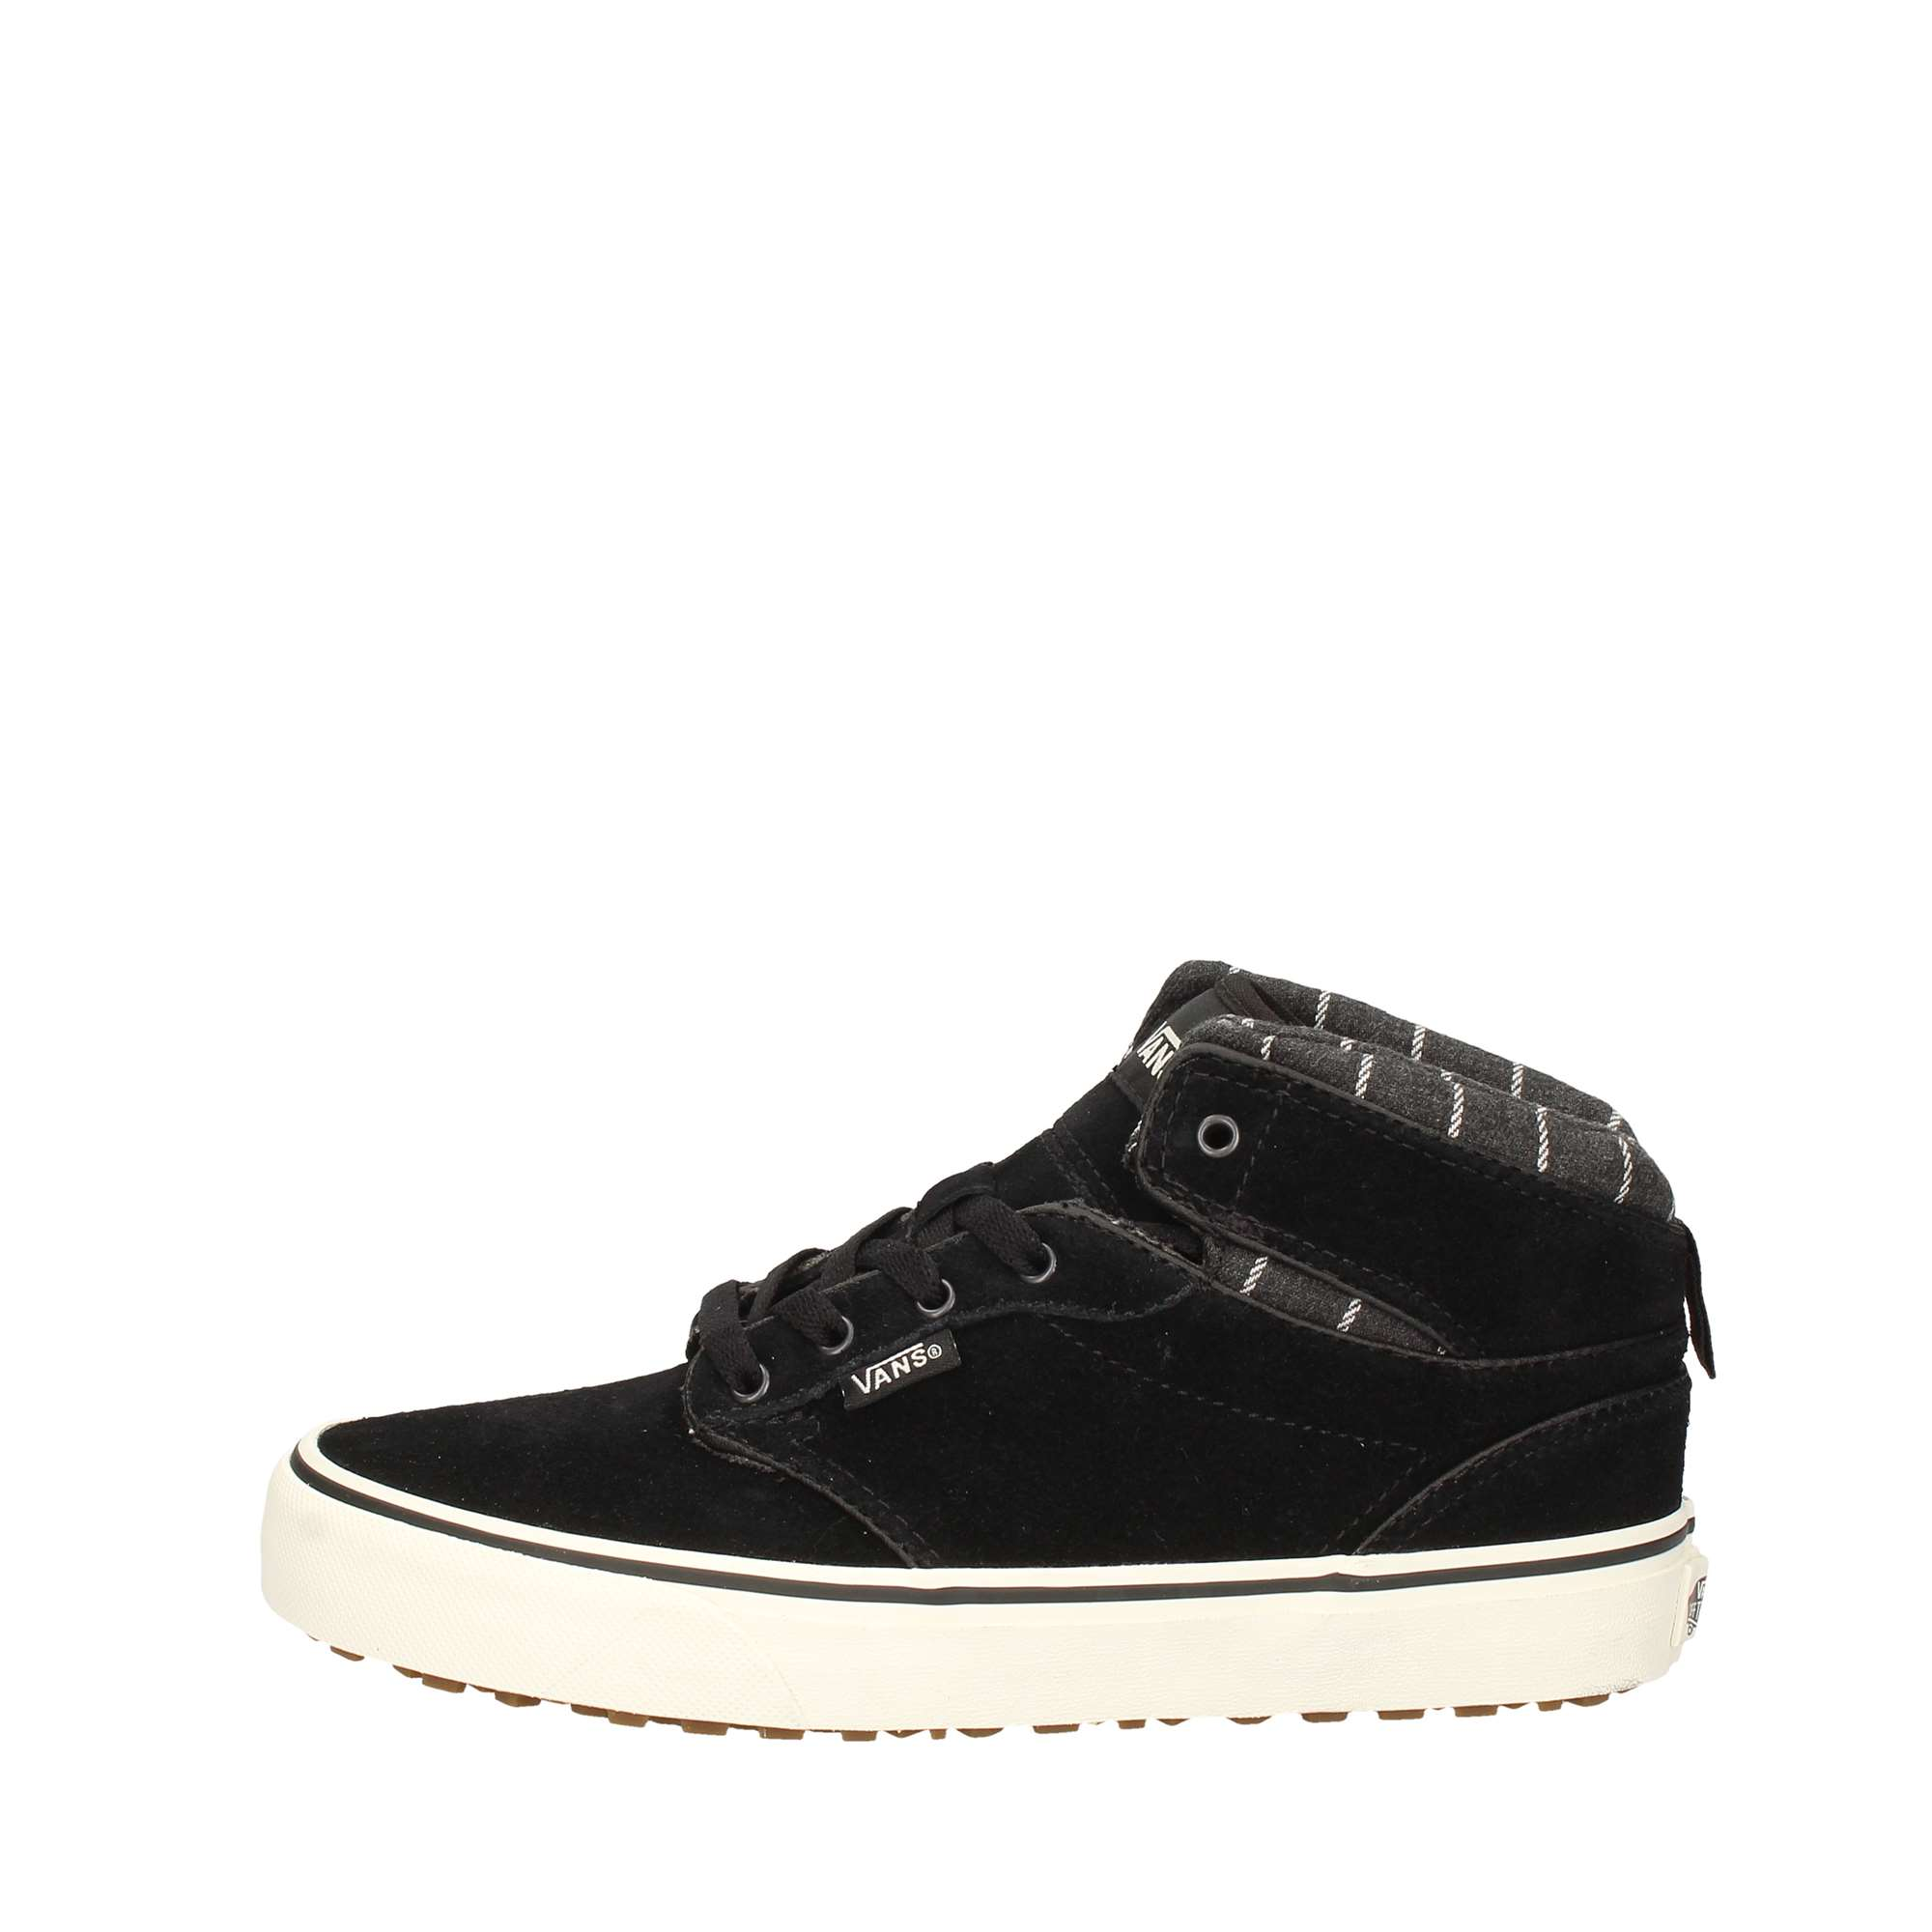 SNEAKERS Uomo VANS VN0 A3DS5I28 Autunno/Inverno